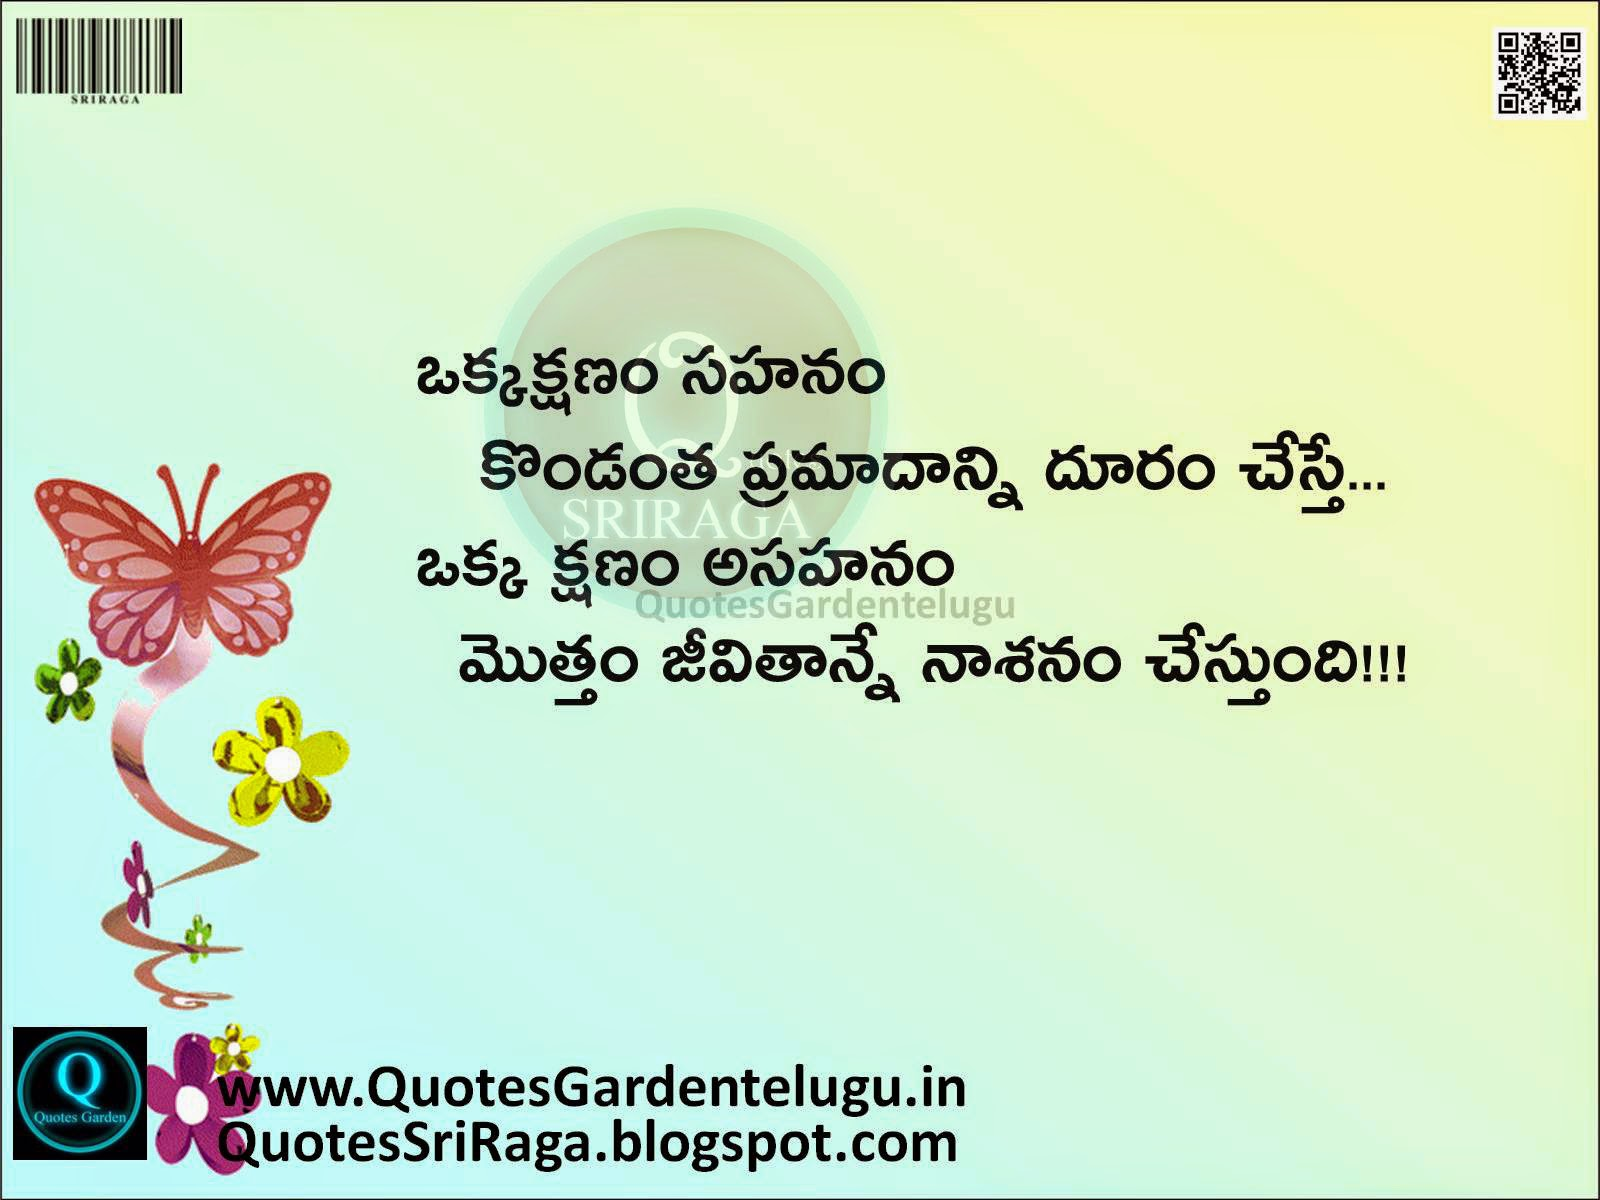 Best telugu life quotes- Life quotes in telugu - Best inspirational quotes about life - Best telugu inspirational quotes - Best telugu inspirational quotes about life - Best telugu Quotes - Telugu life quotes